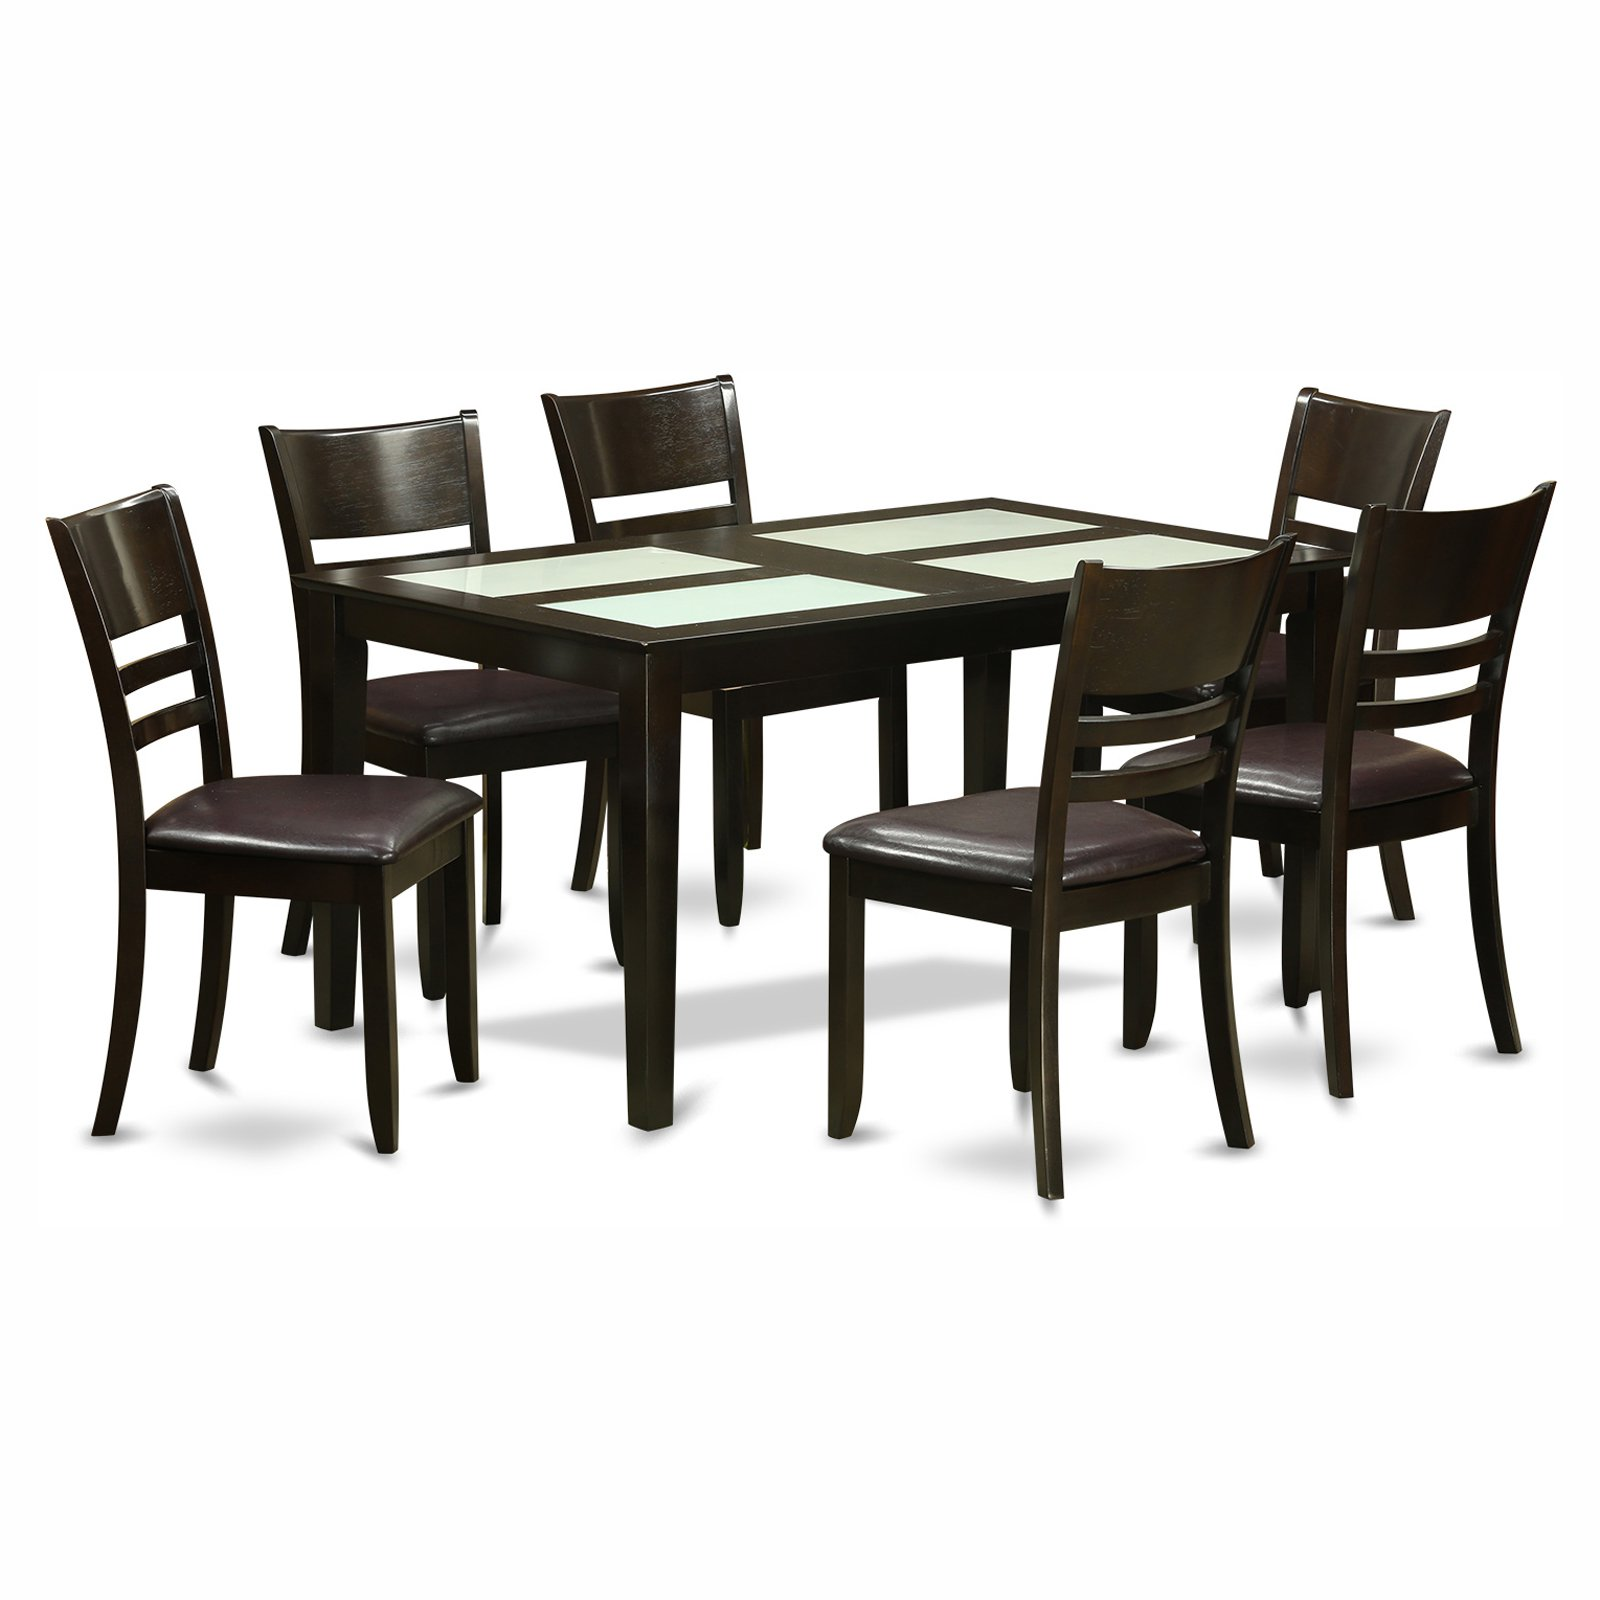 East West Furniture Capris 7 Piece Glass Top Rectangular Dining Table Set with Fields Faux Leather Seat Chairs